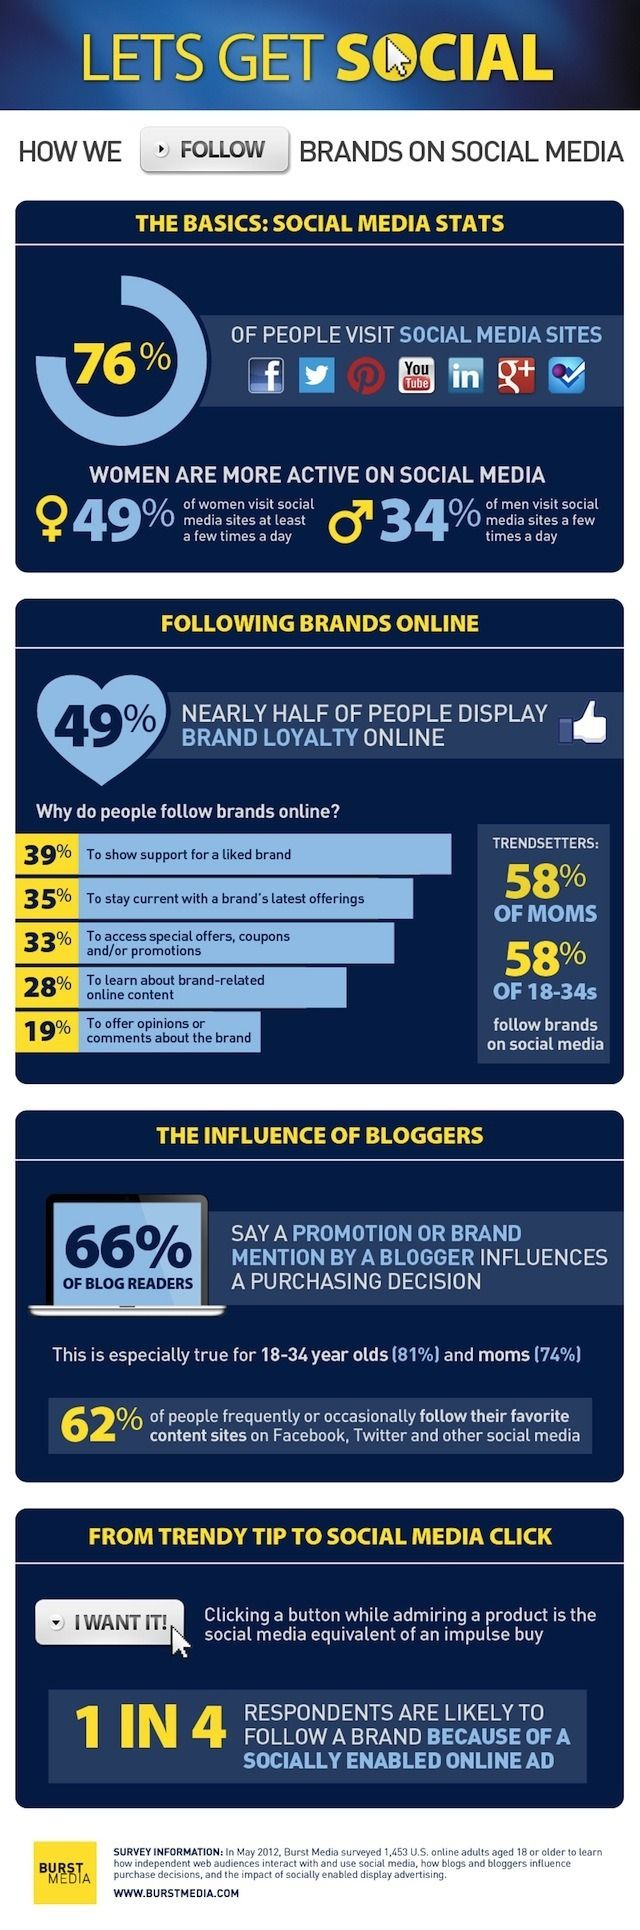 Moms Are Biggest Brand Boosters on Facebook